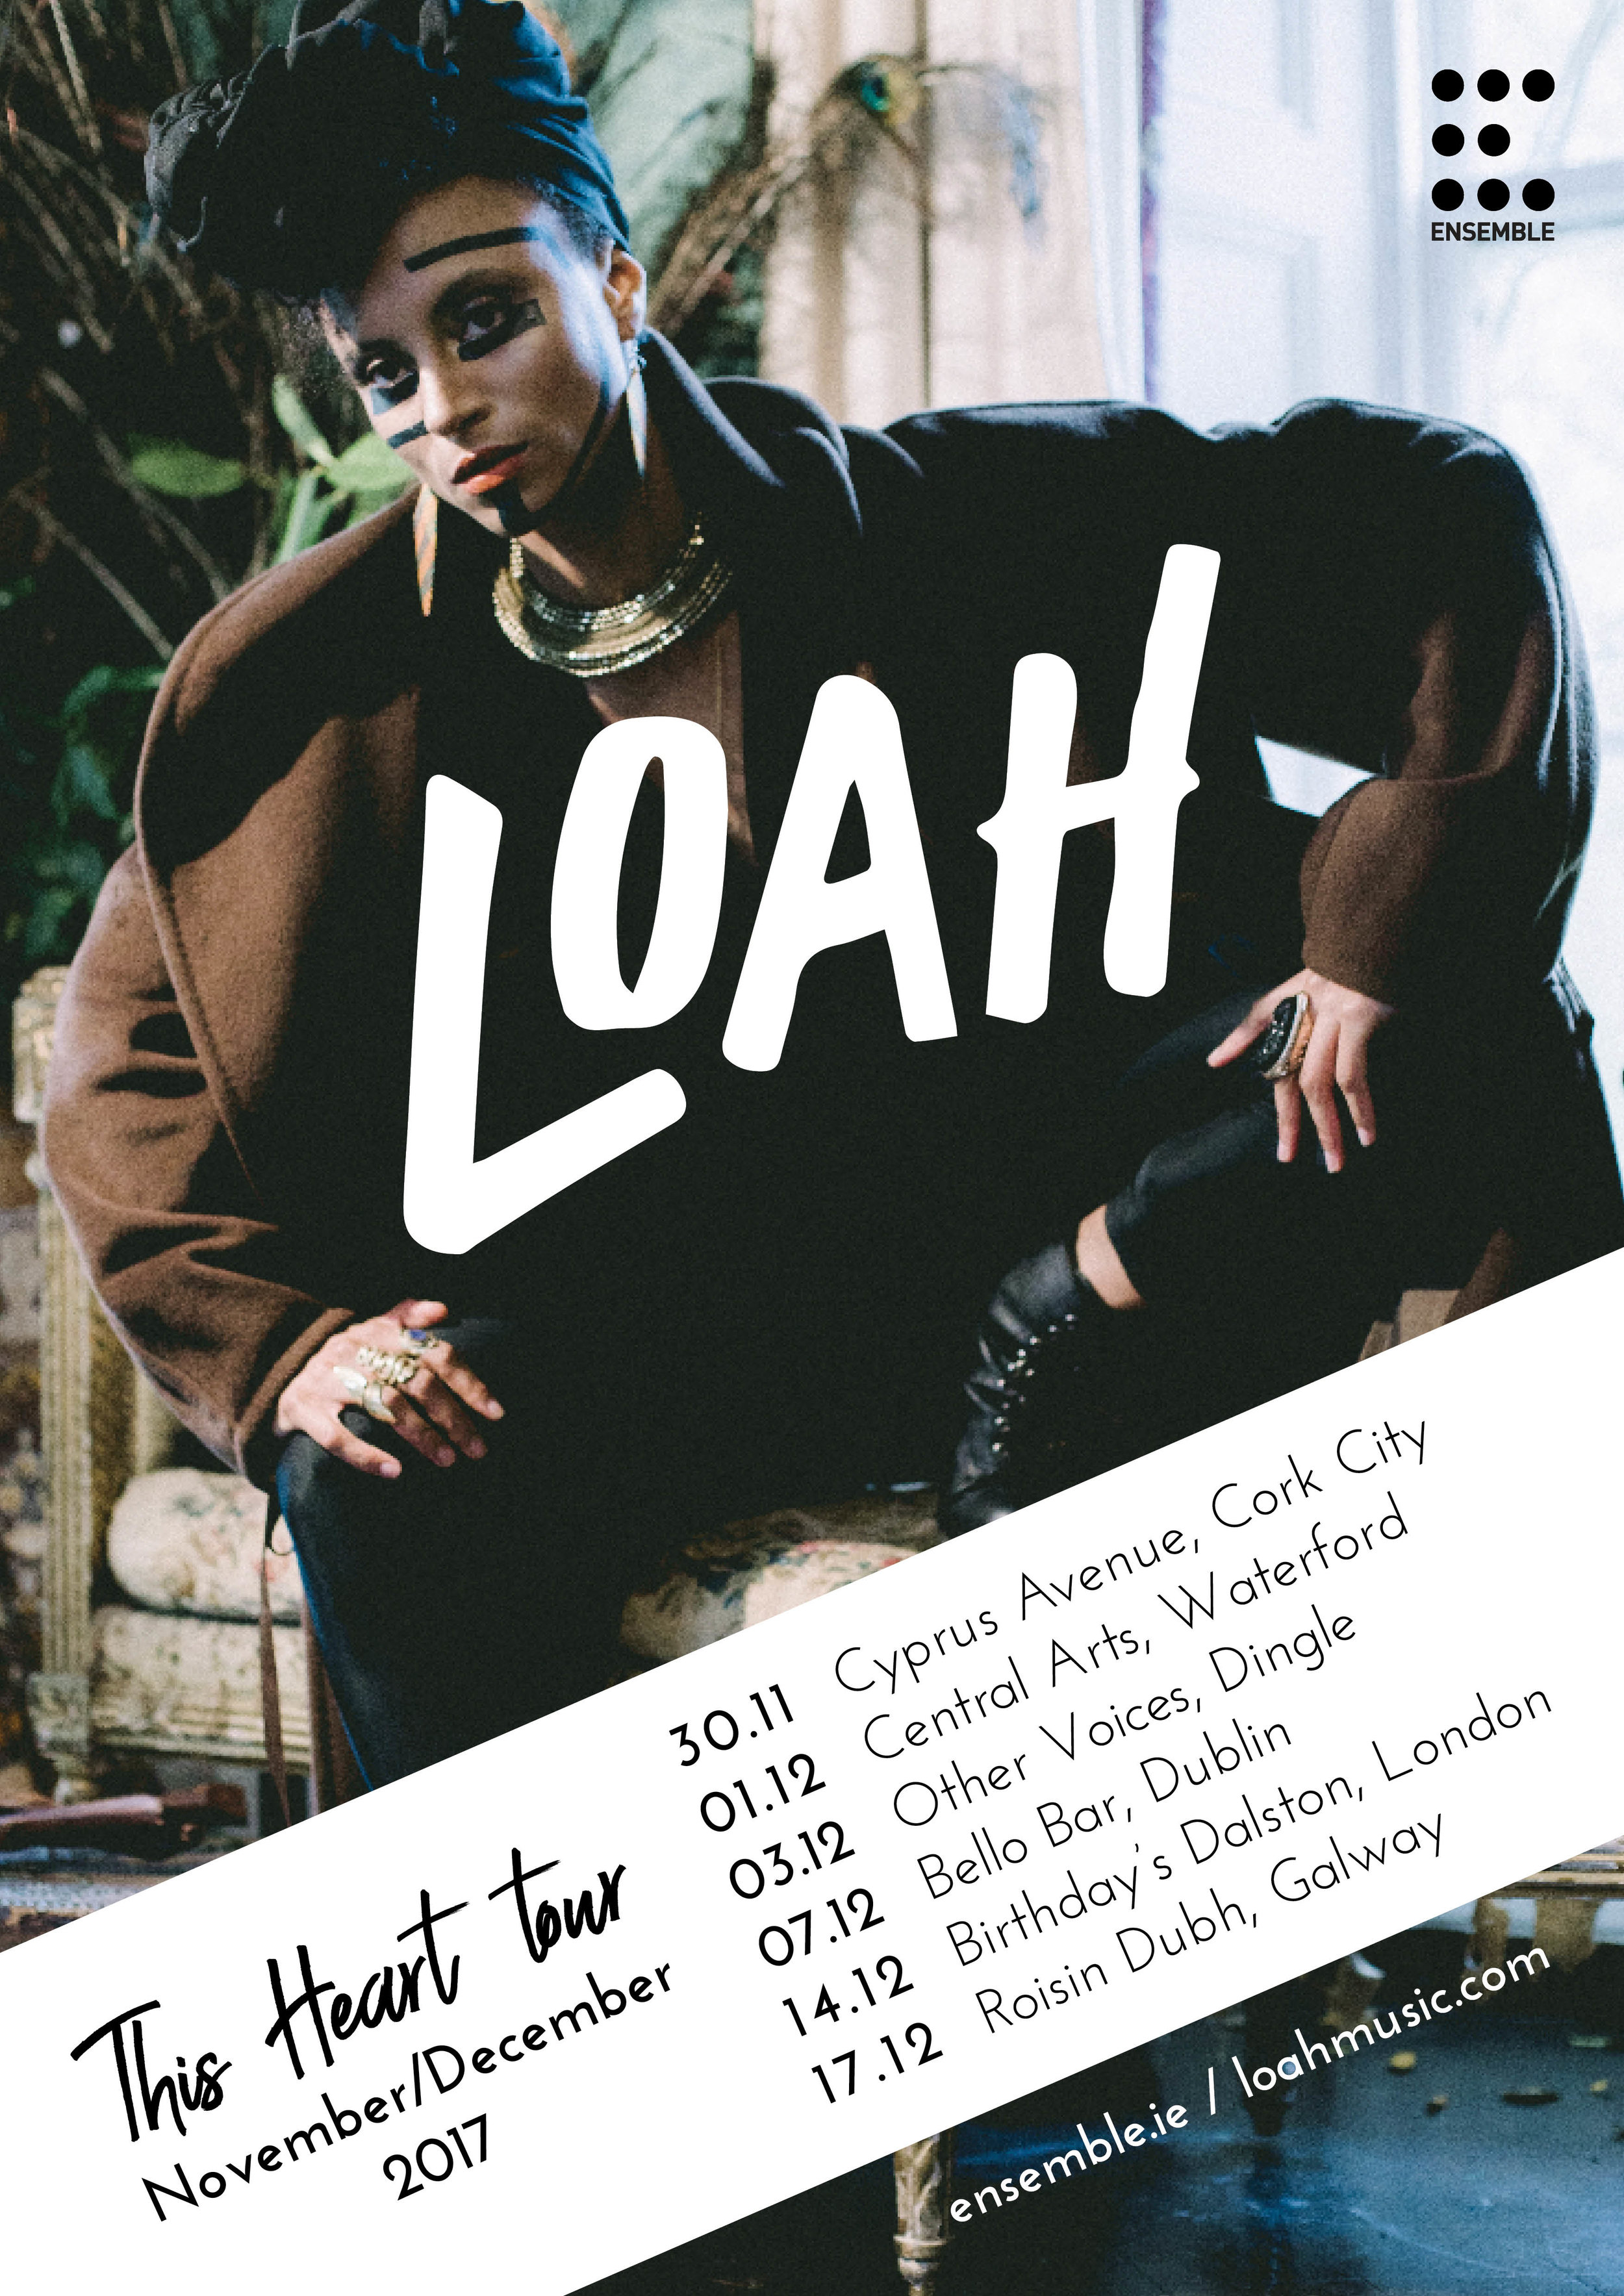 Loah tour artwork_A3.jpg